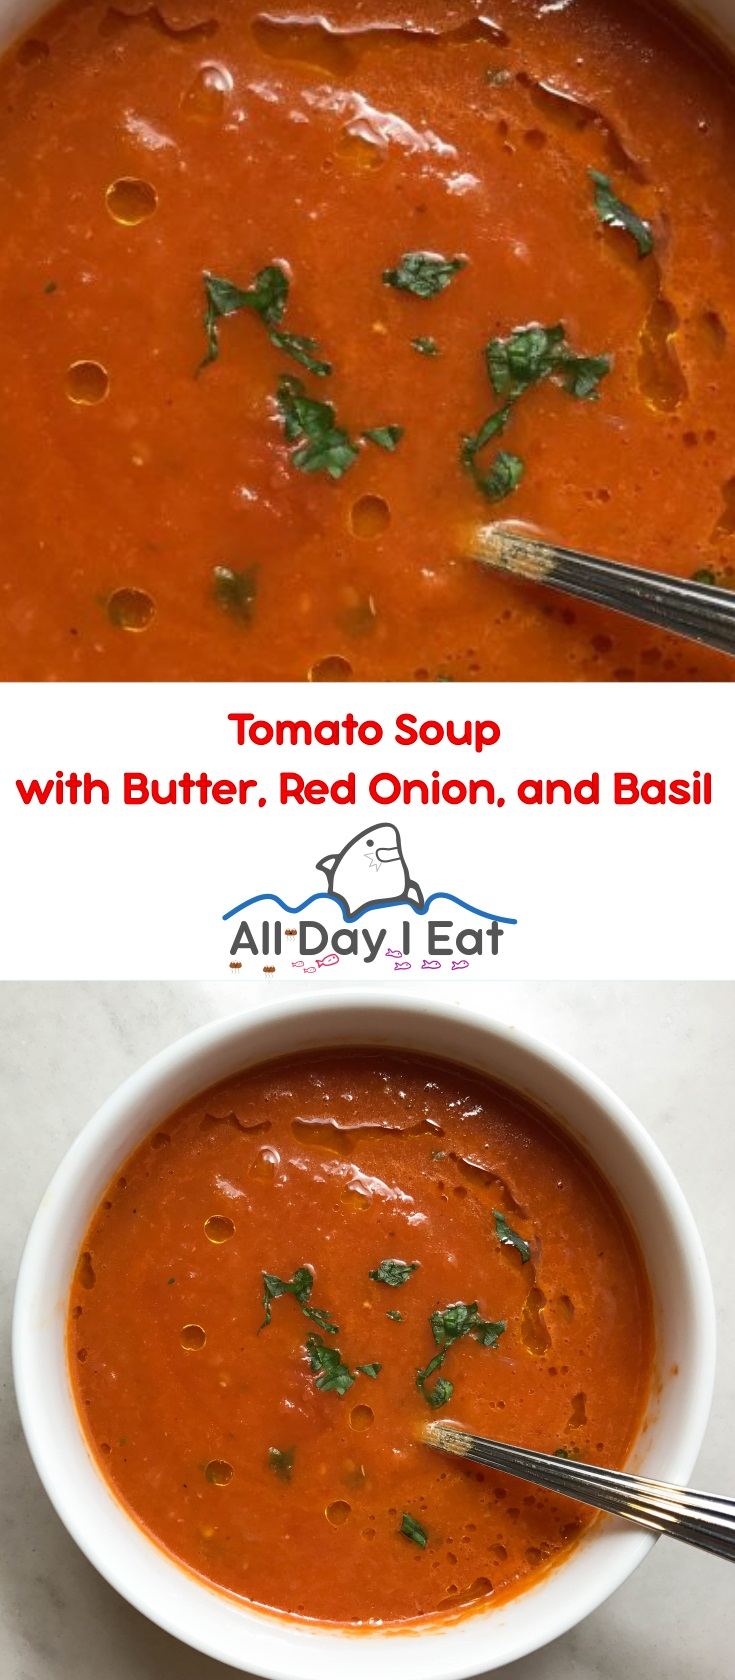 Tomato Soup with Butter, Red Onion, and Basil | www.alldayieat.com